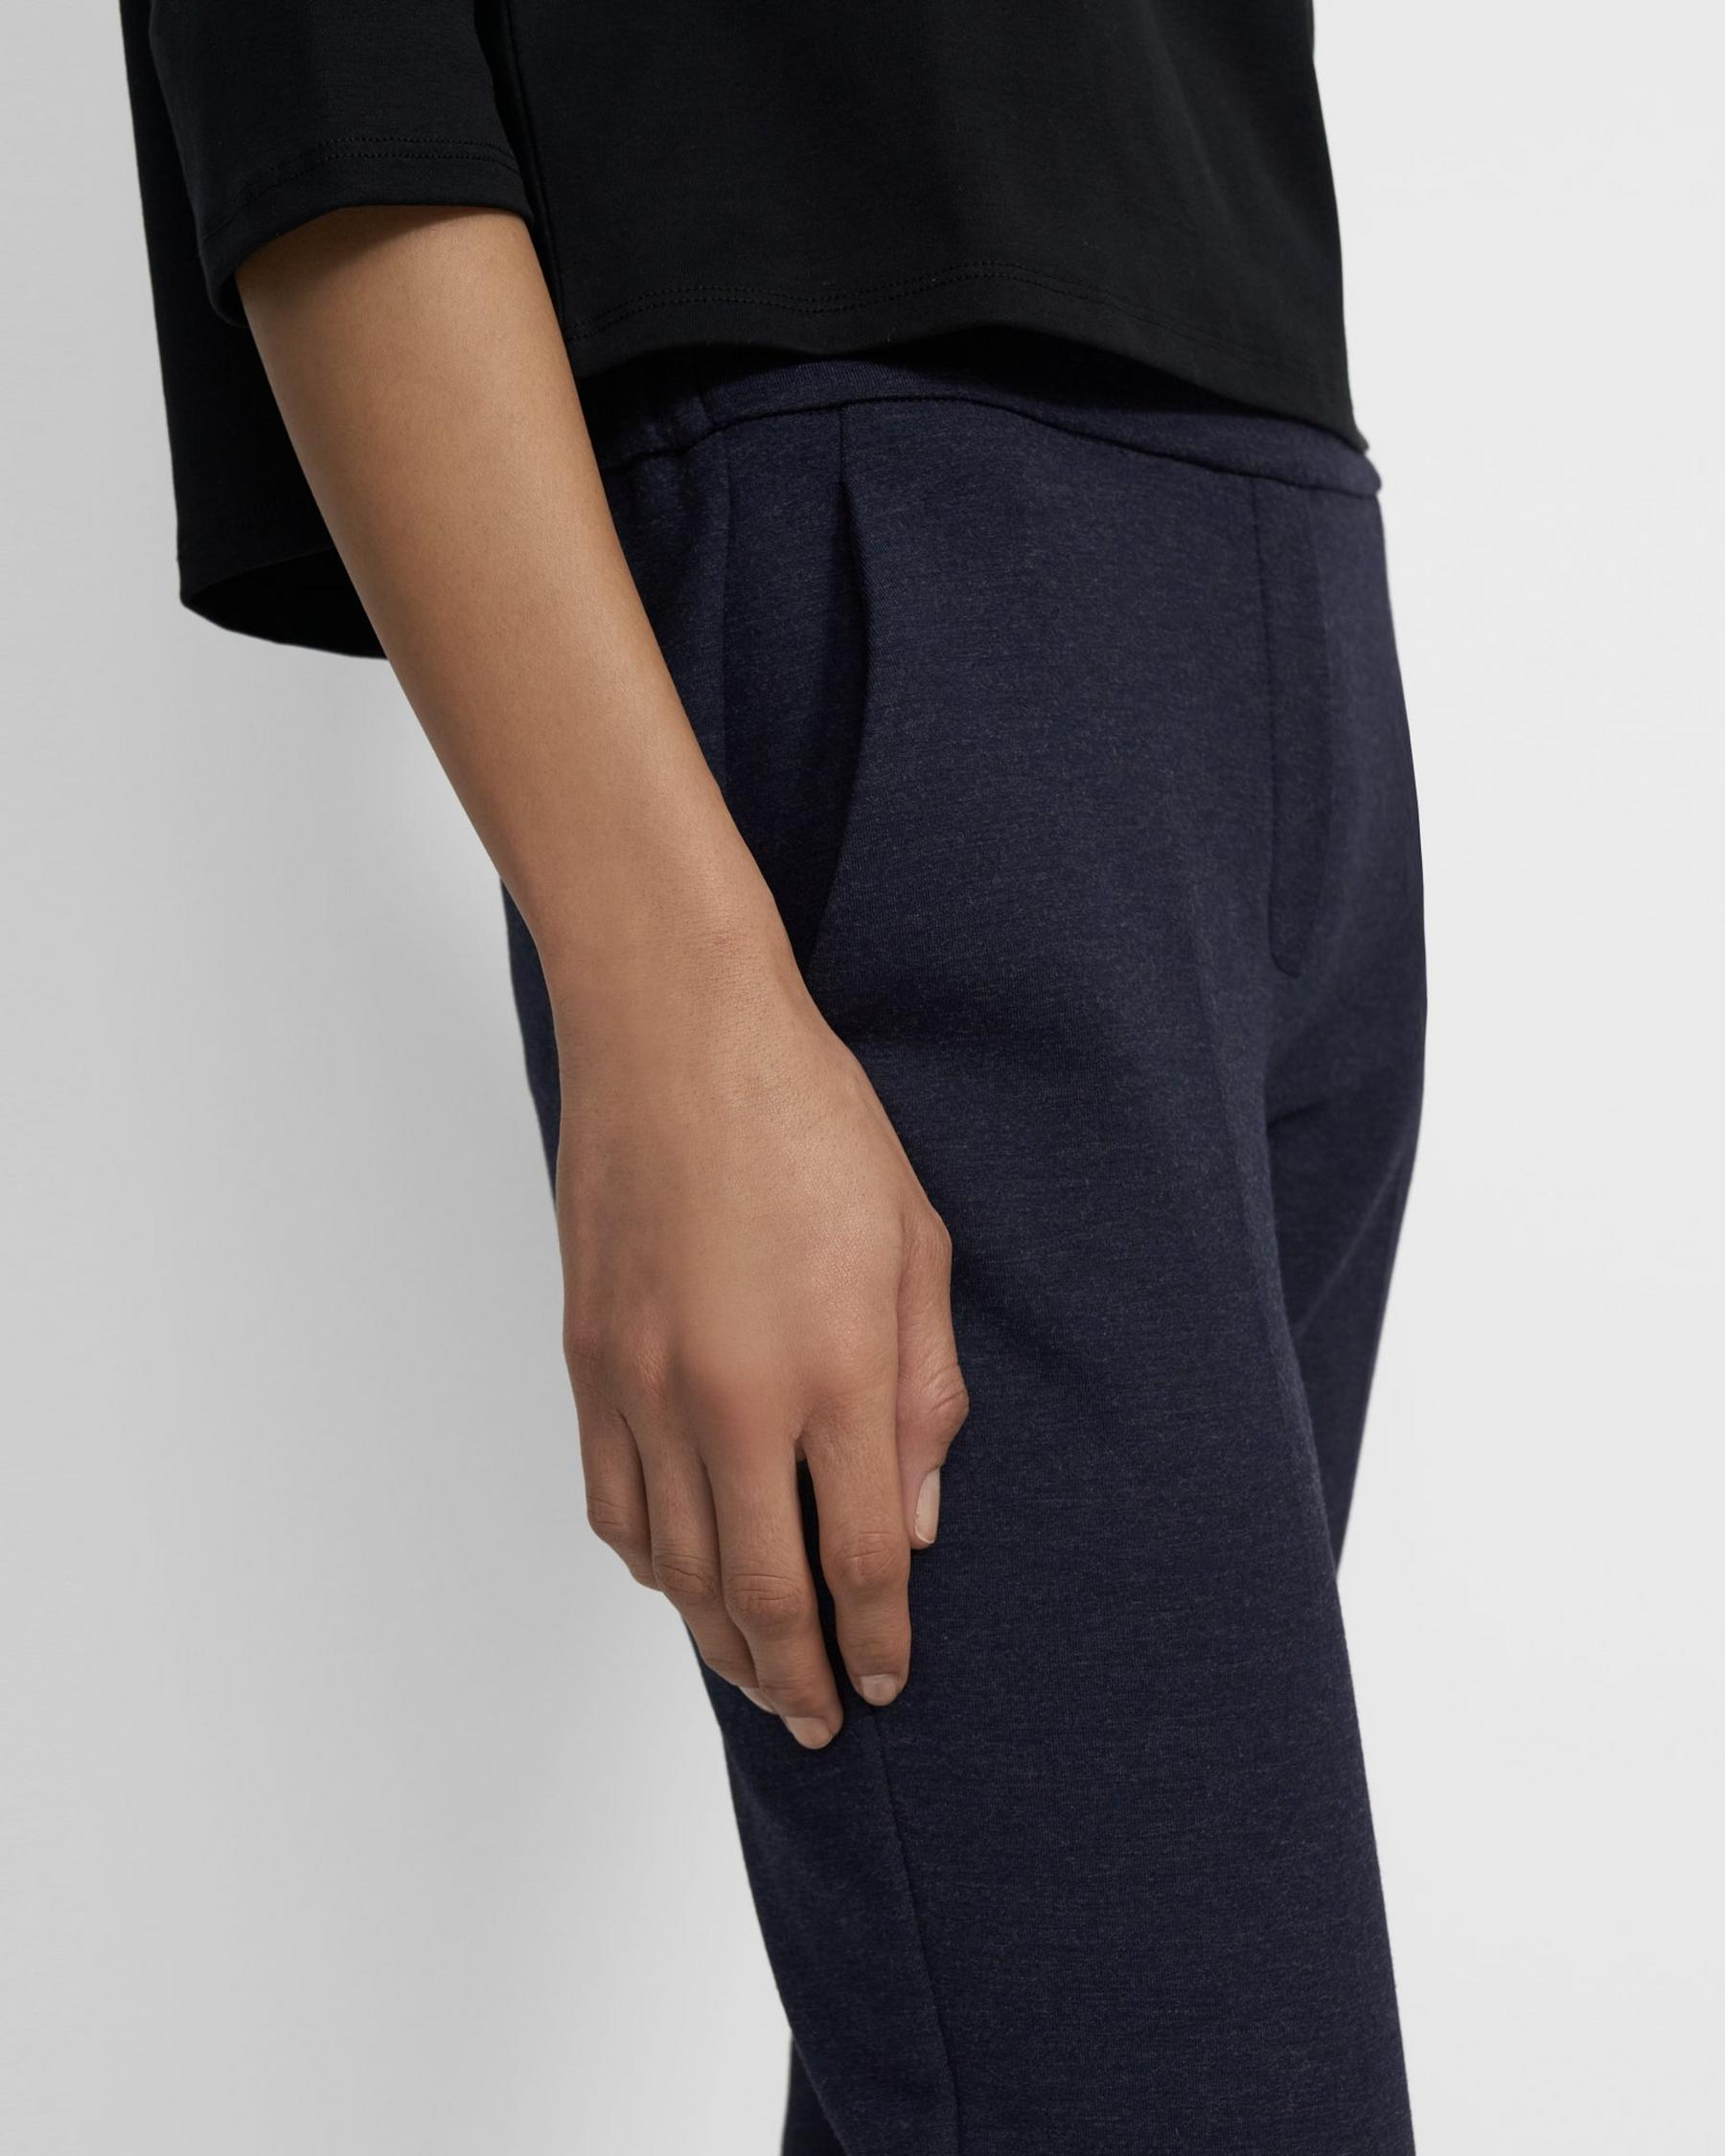 Treeca Pull-On Pant in Double-Knit Jersey 1